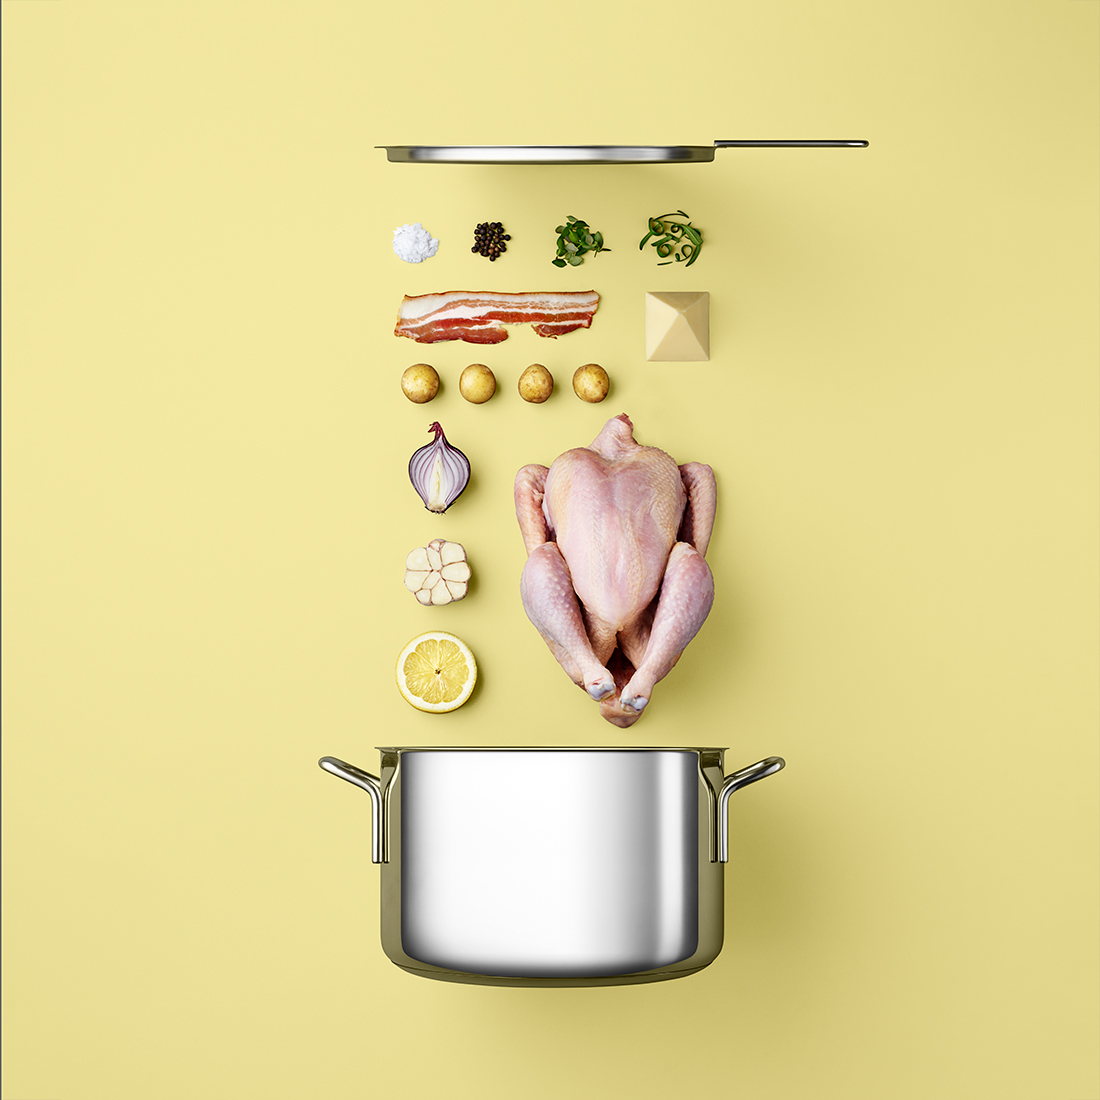 Recipes Organized into Component Parts in Food Styling Photos by Mikkel Jul Hvilshoj